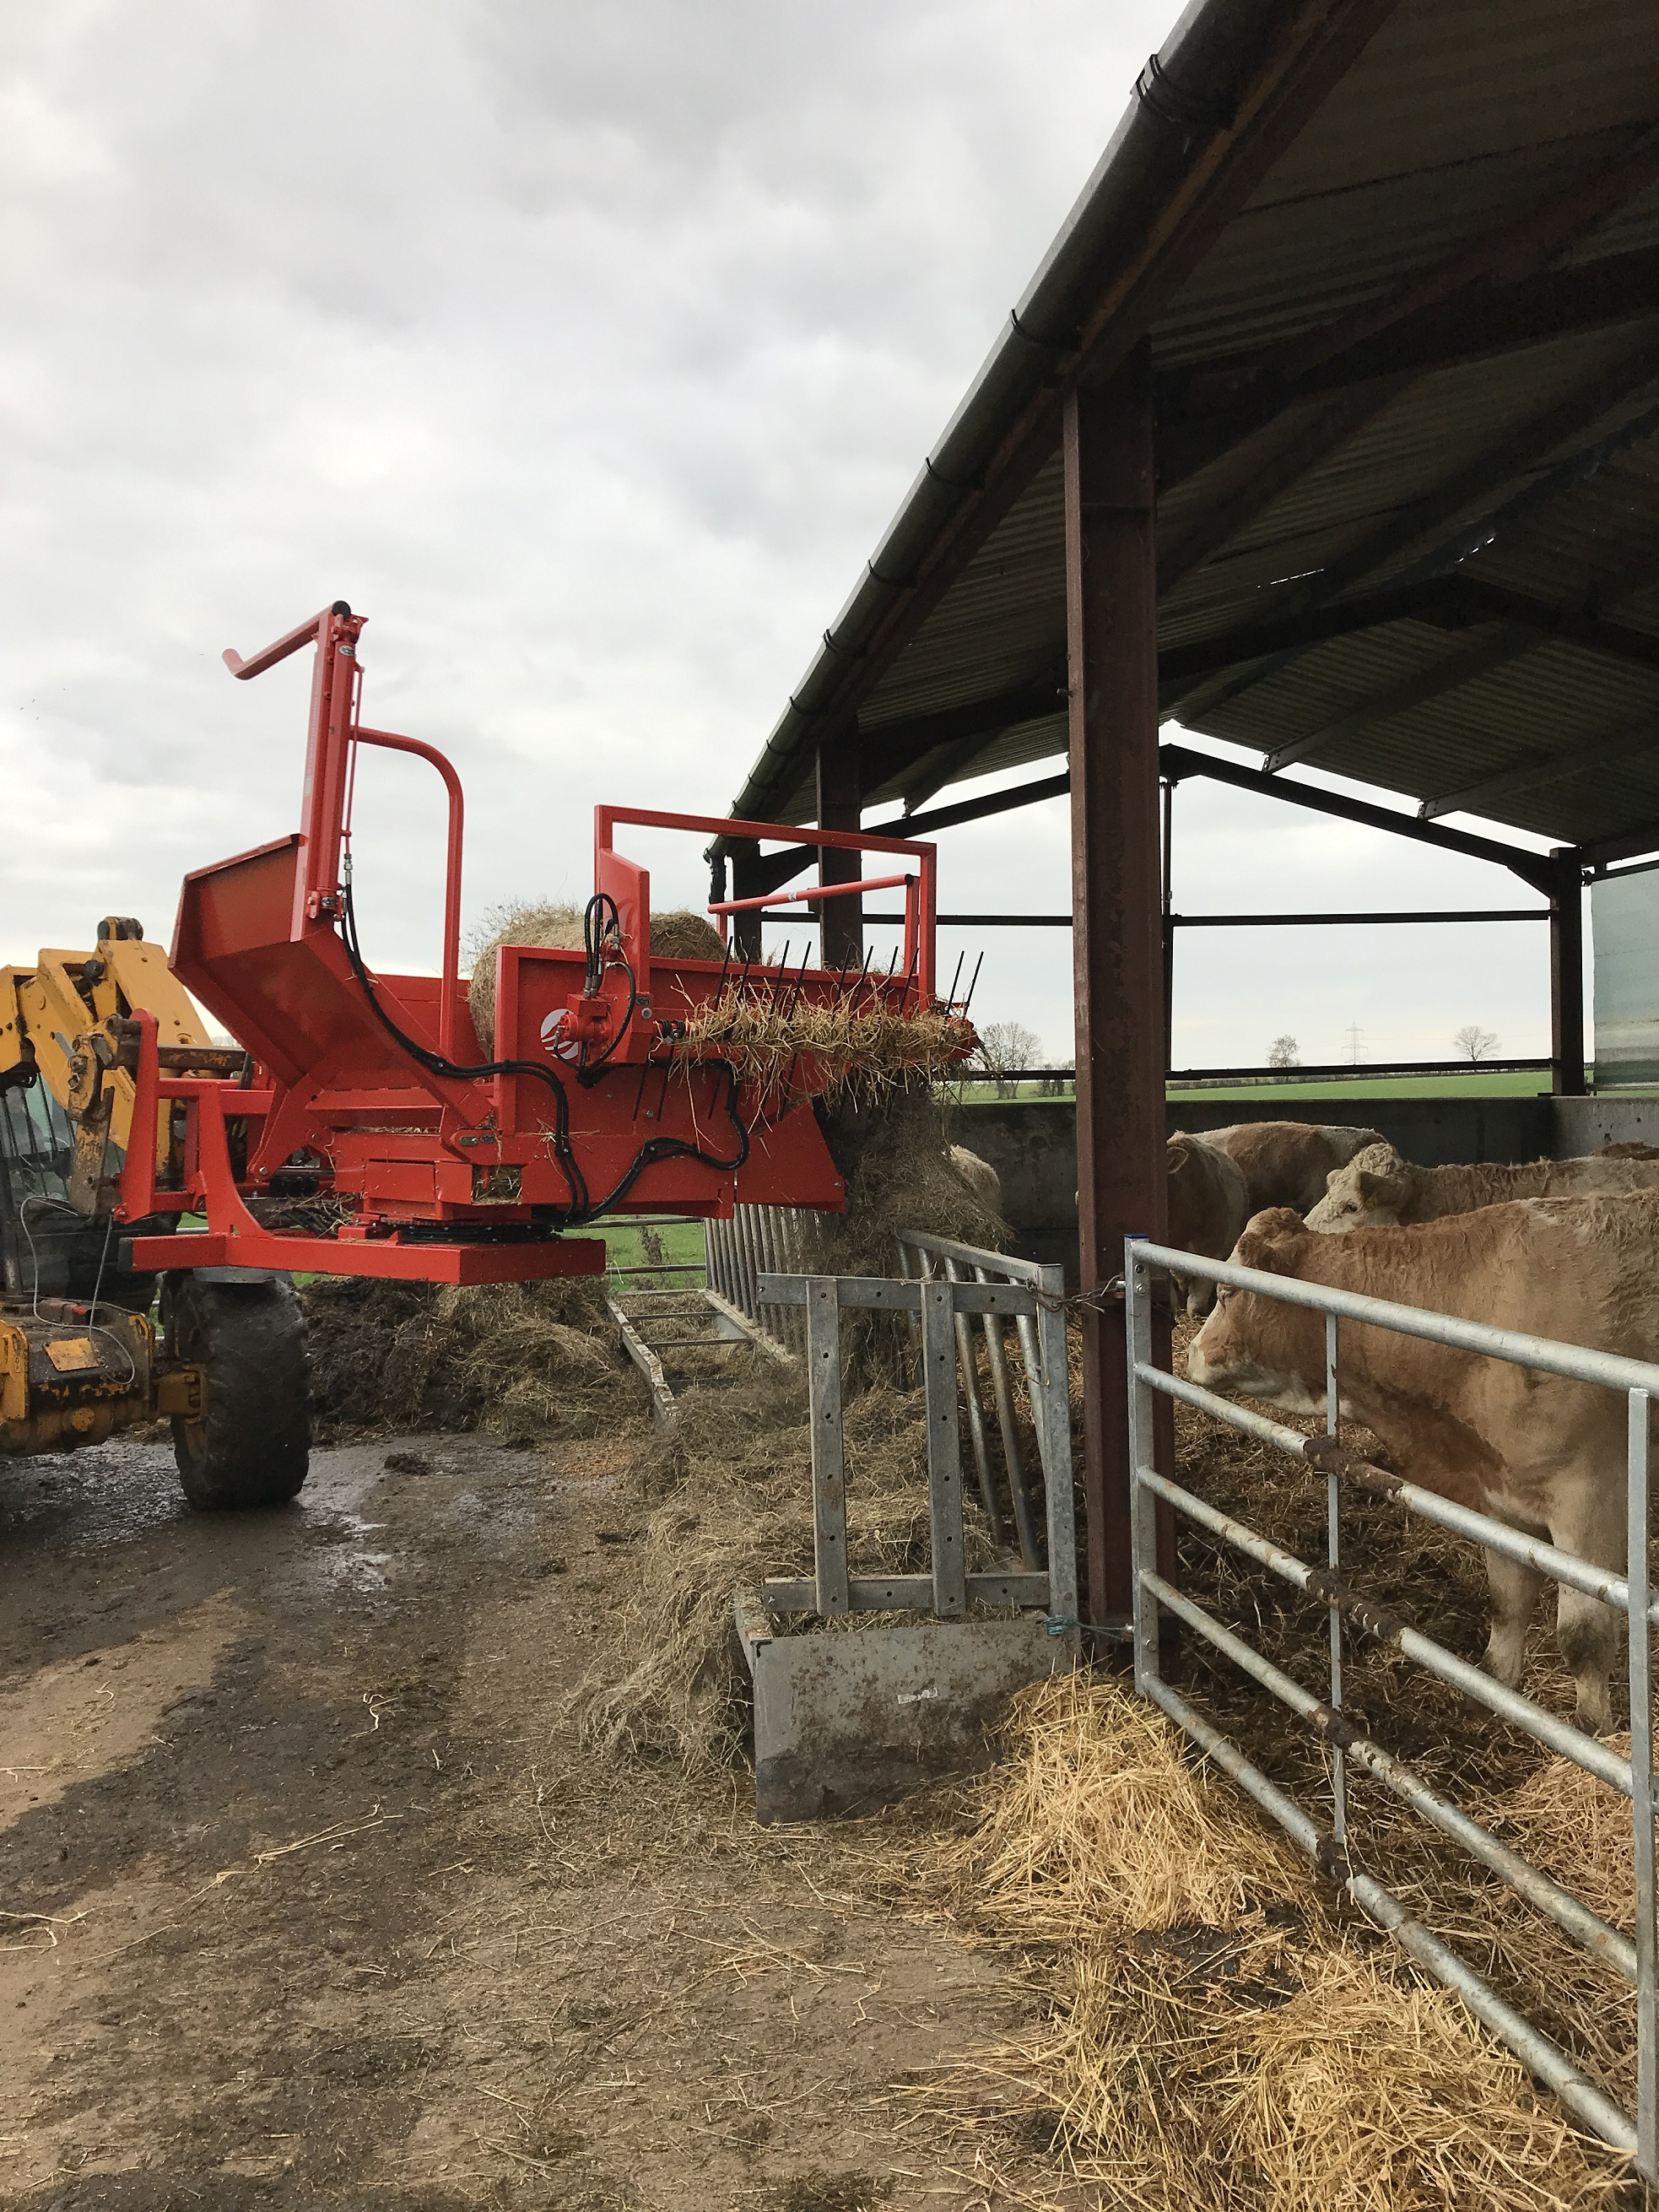 cattle-bale-feeding-machinery